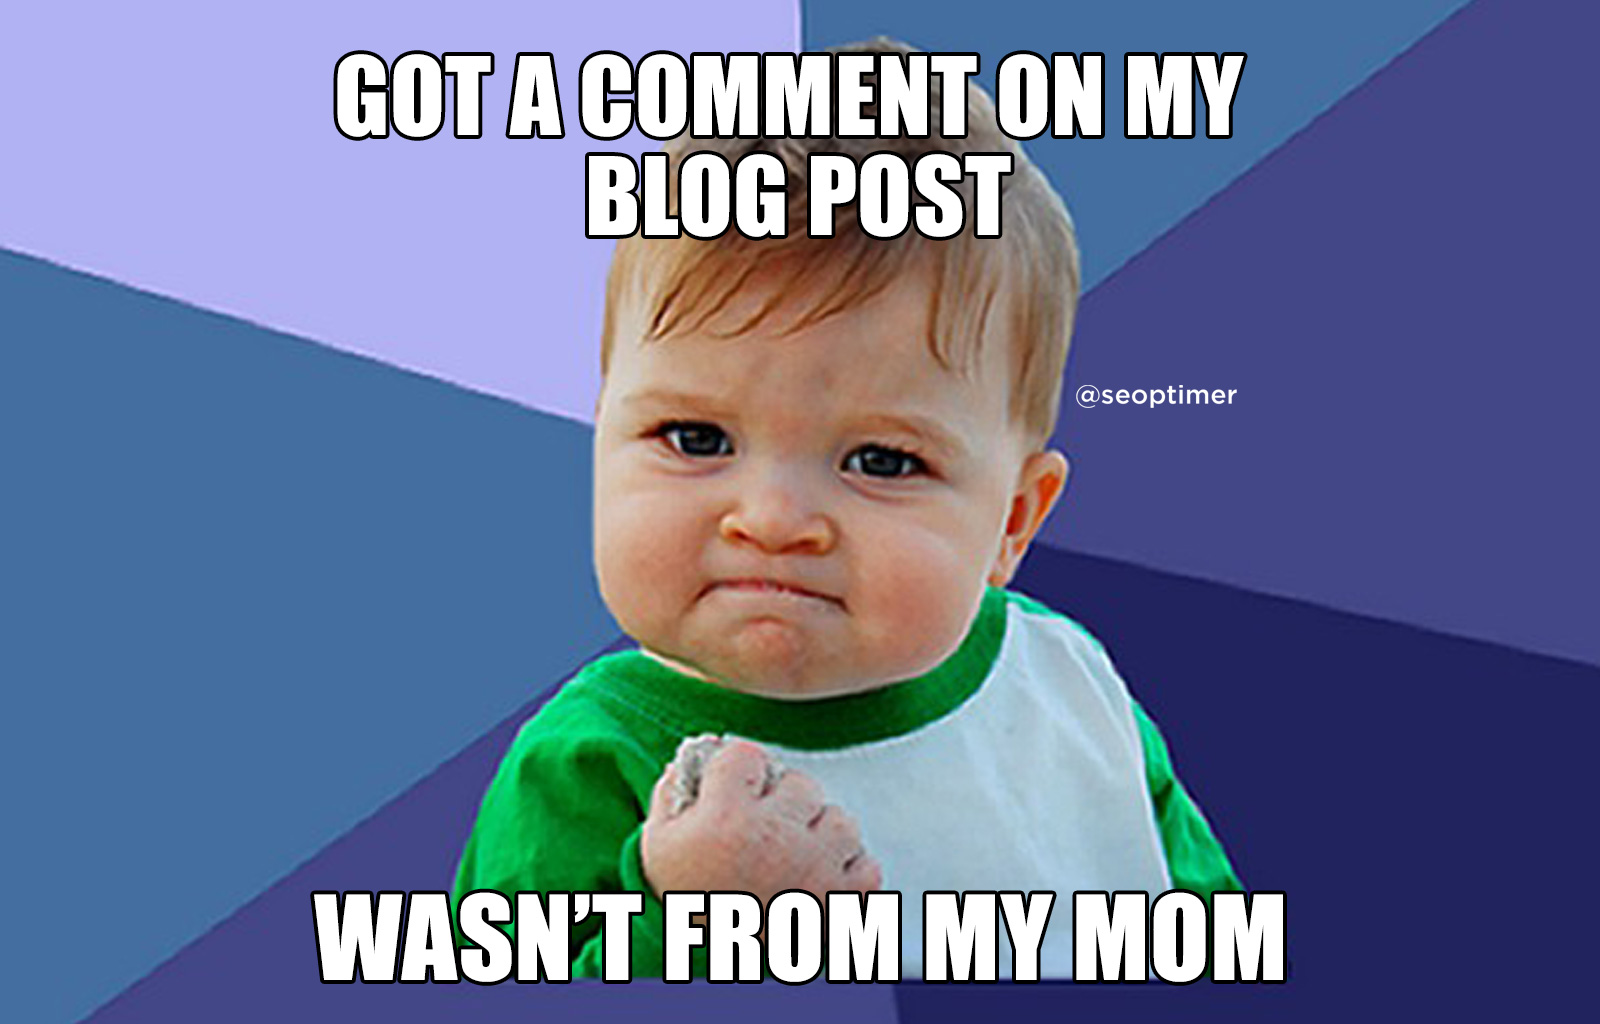 Comment on blog